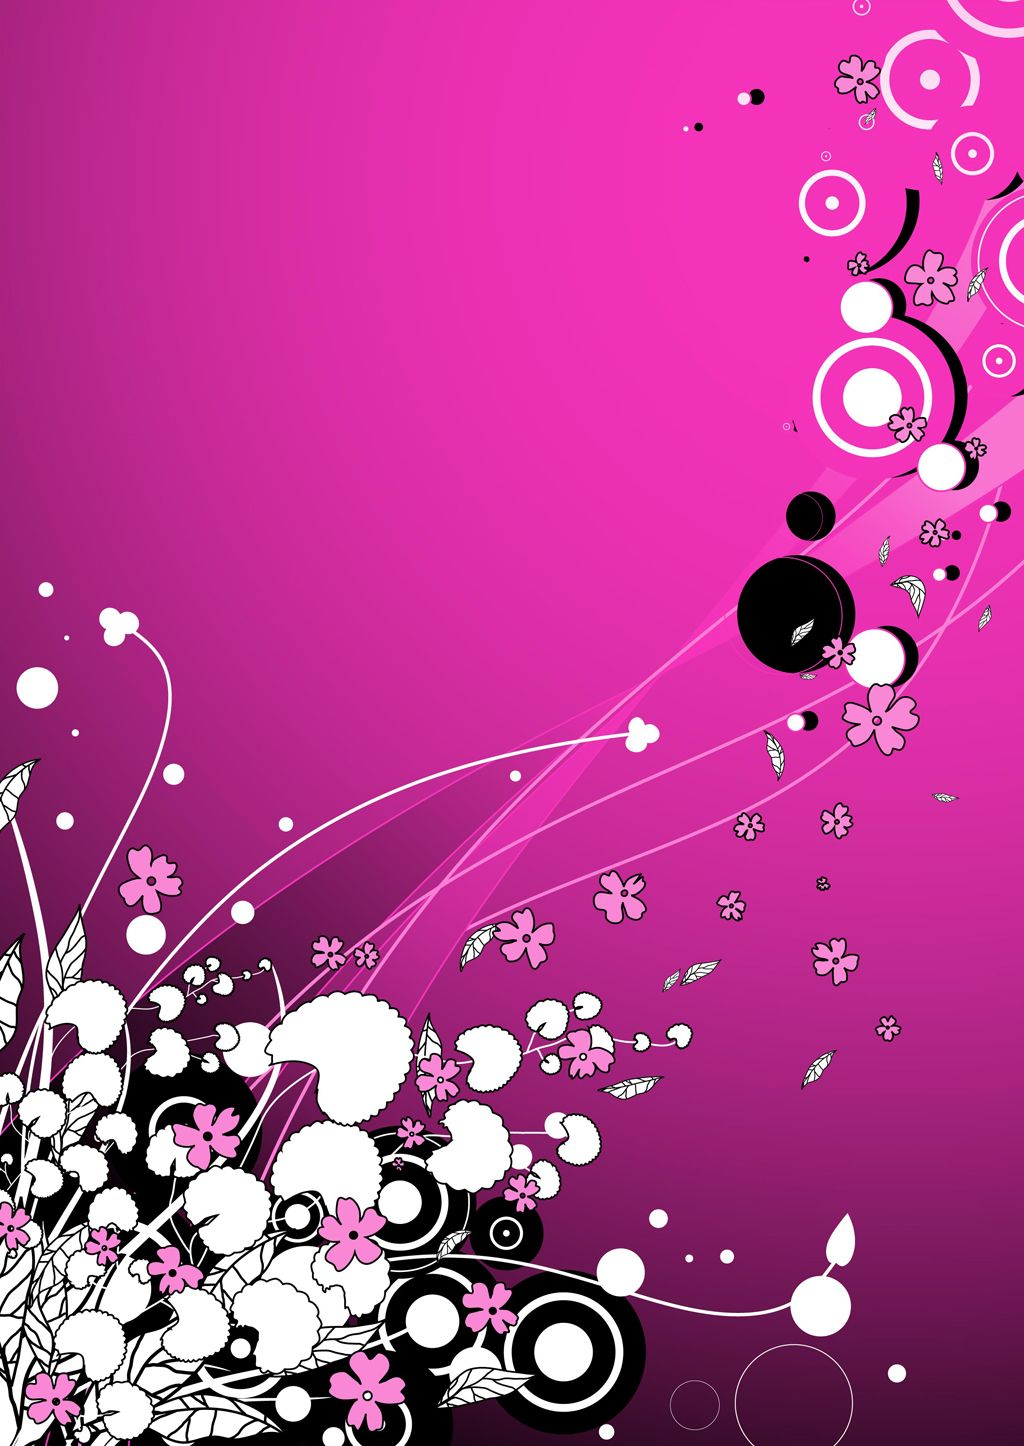 Free Vector Pink Flower Background Graphic Available For Free Download At 4vector Com Check Out Our Pink Flowers Background Flower Backgrounds Vector Flowers